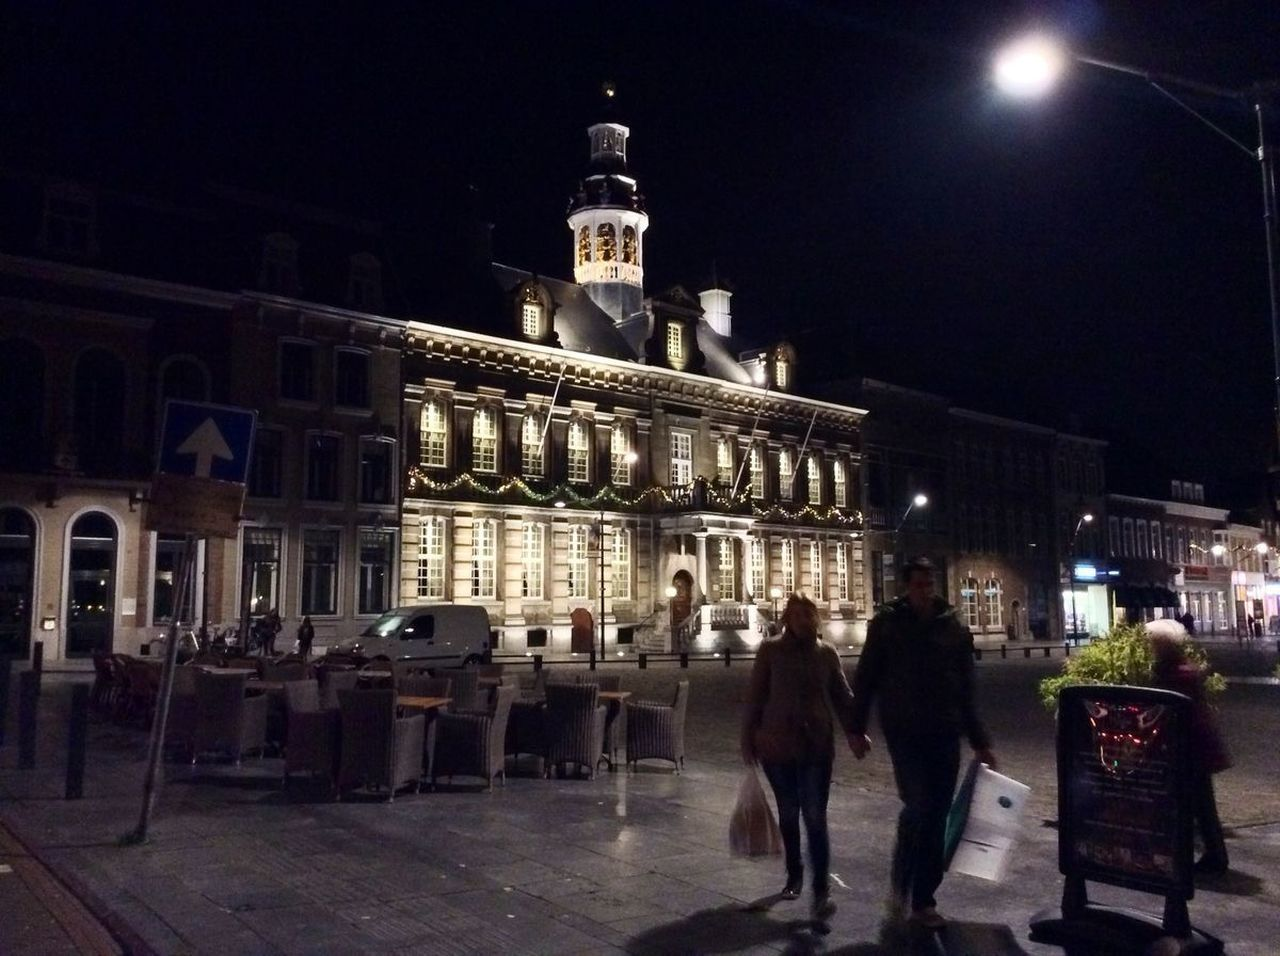 Roermond Netherlands Limburg Netherlands ❤ Netherland I❤️ Roermond Learn & Shoot: After Dark Roermond Market Place At Night